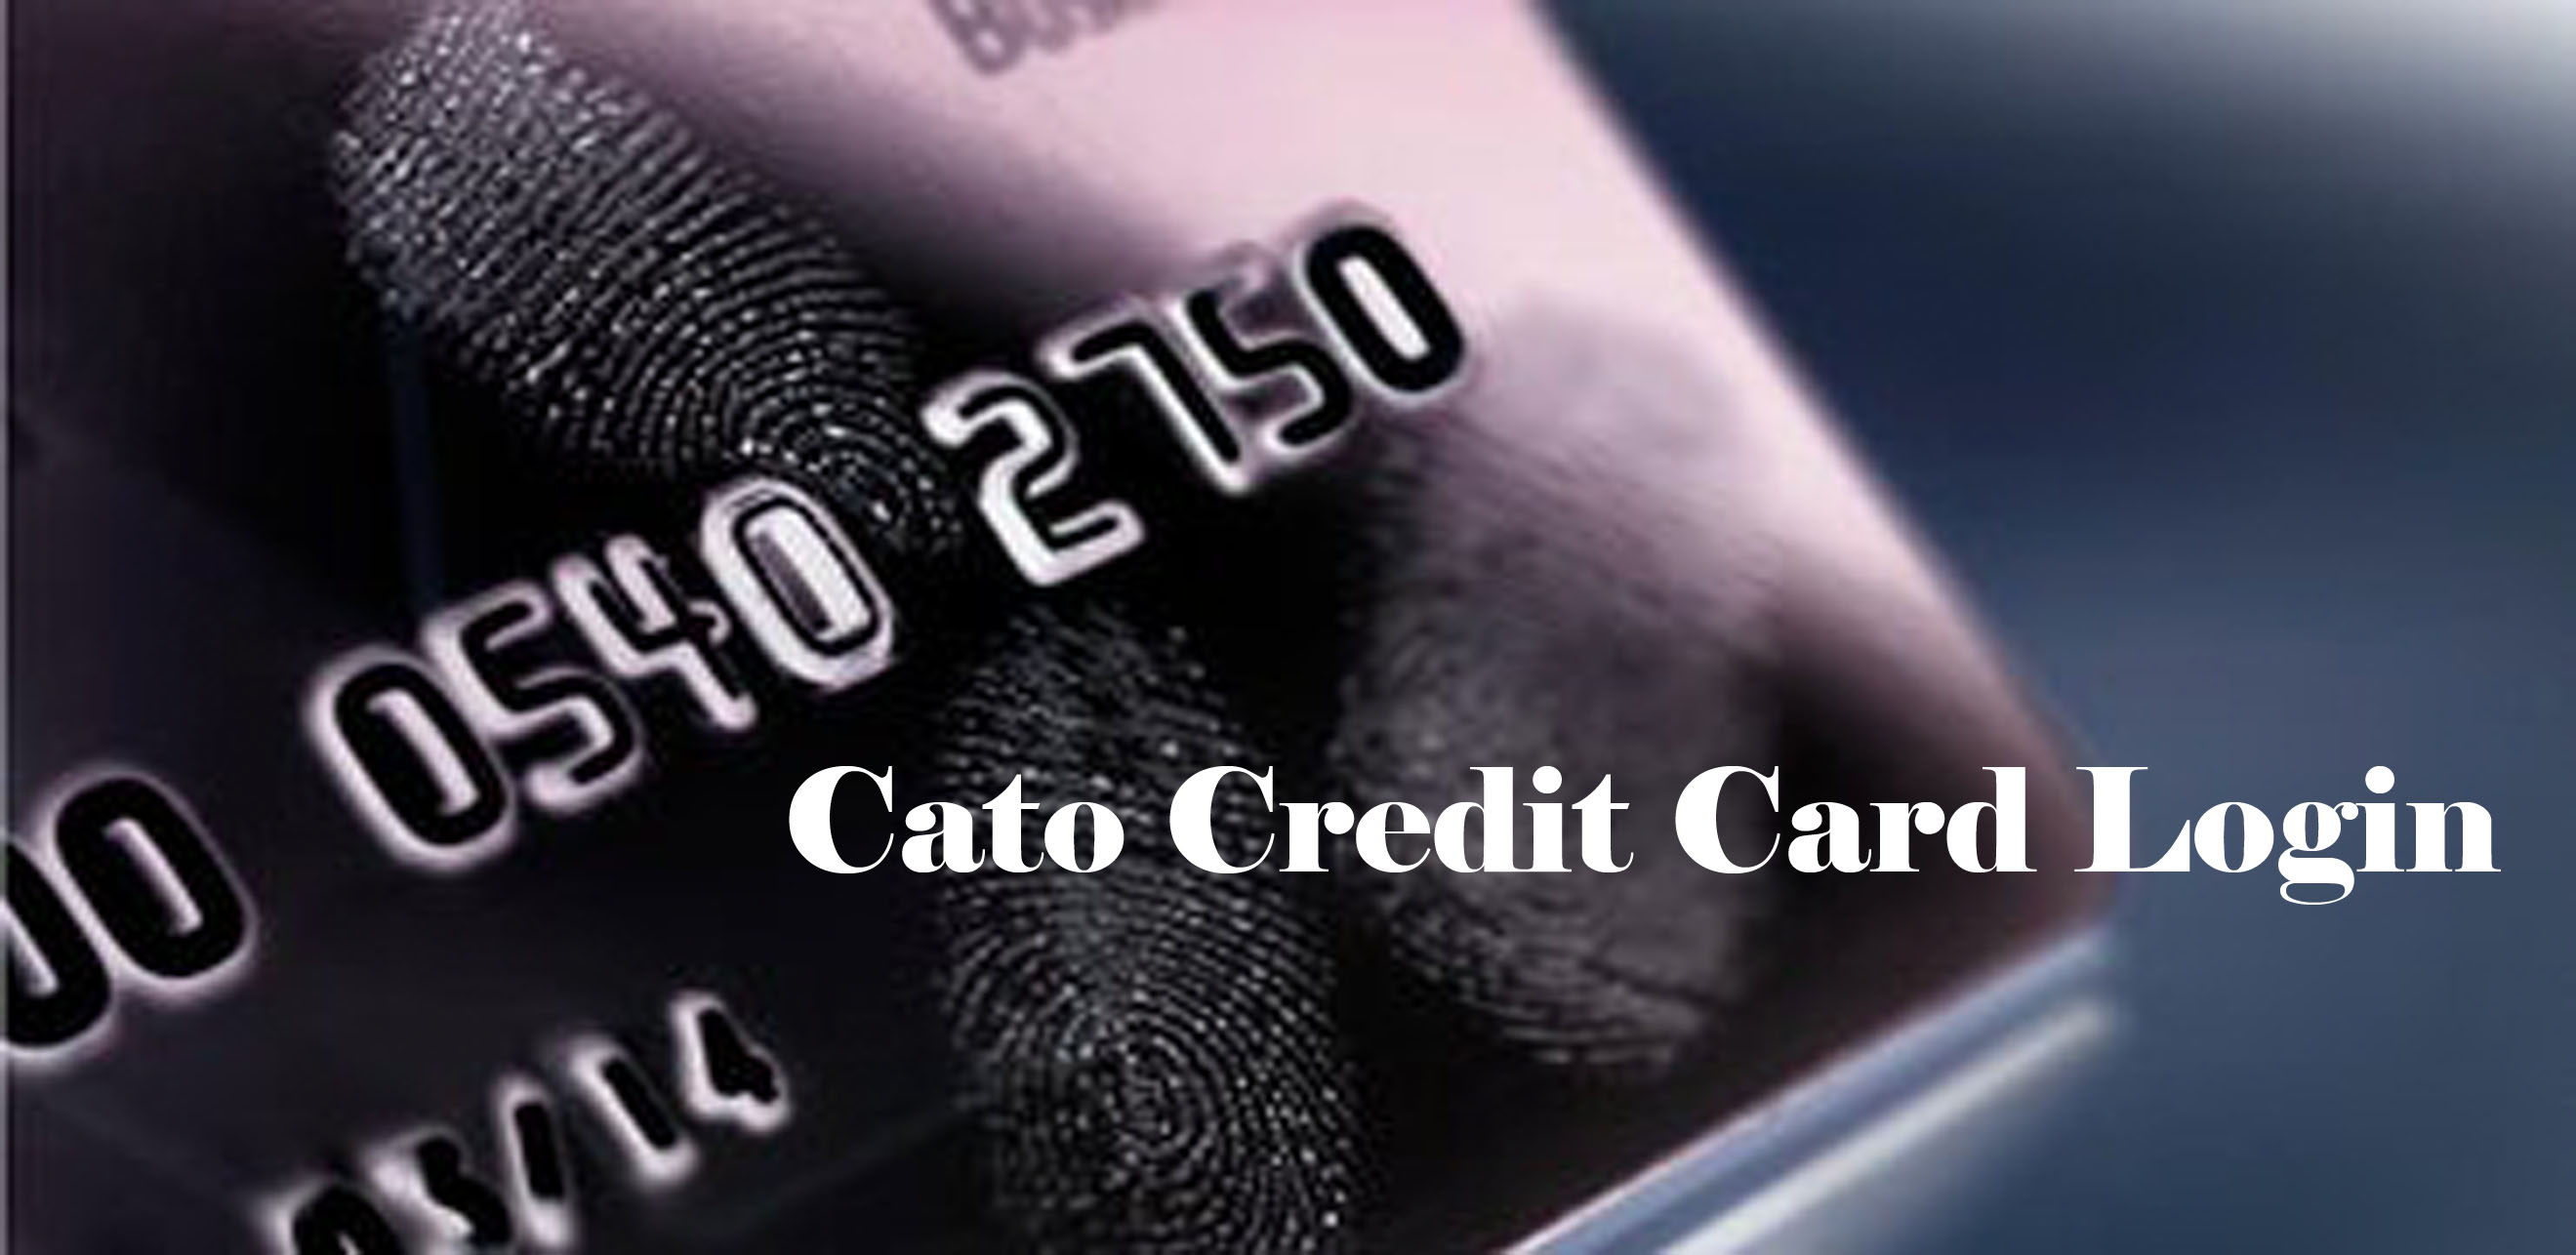 Cato Credit Card Login - How to Login to Cato credit Card Online